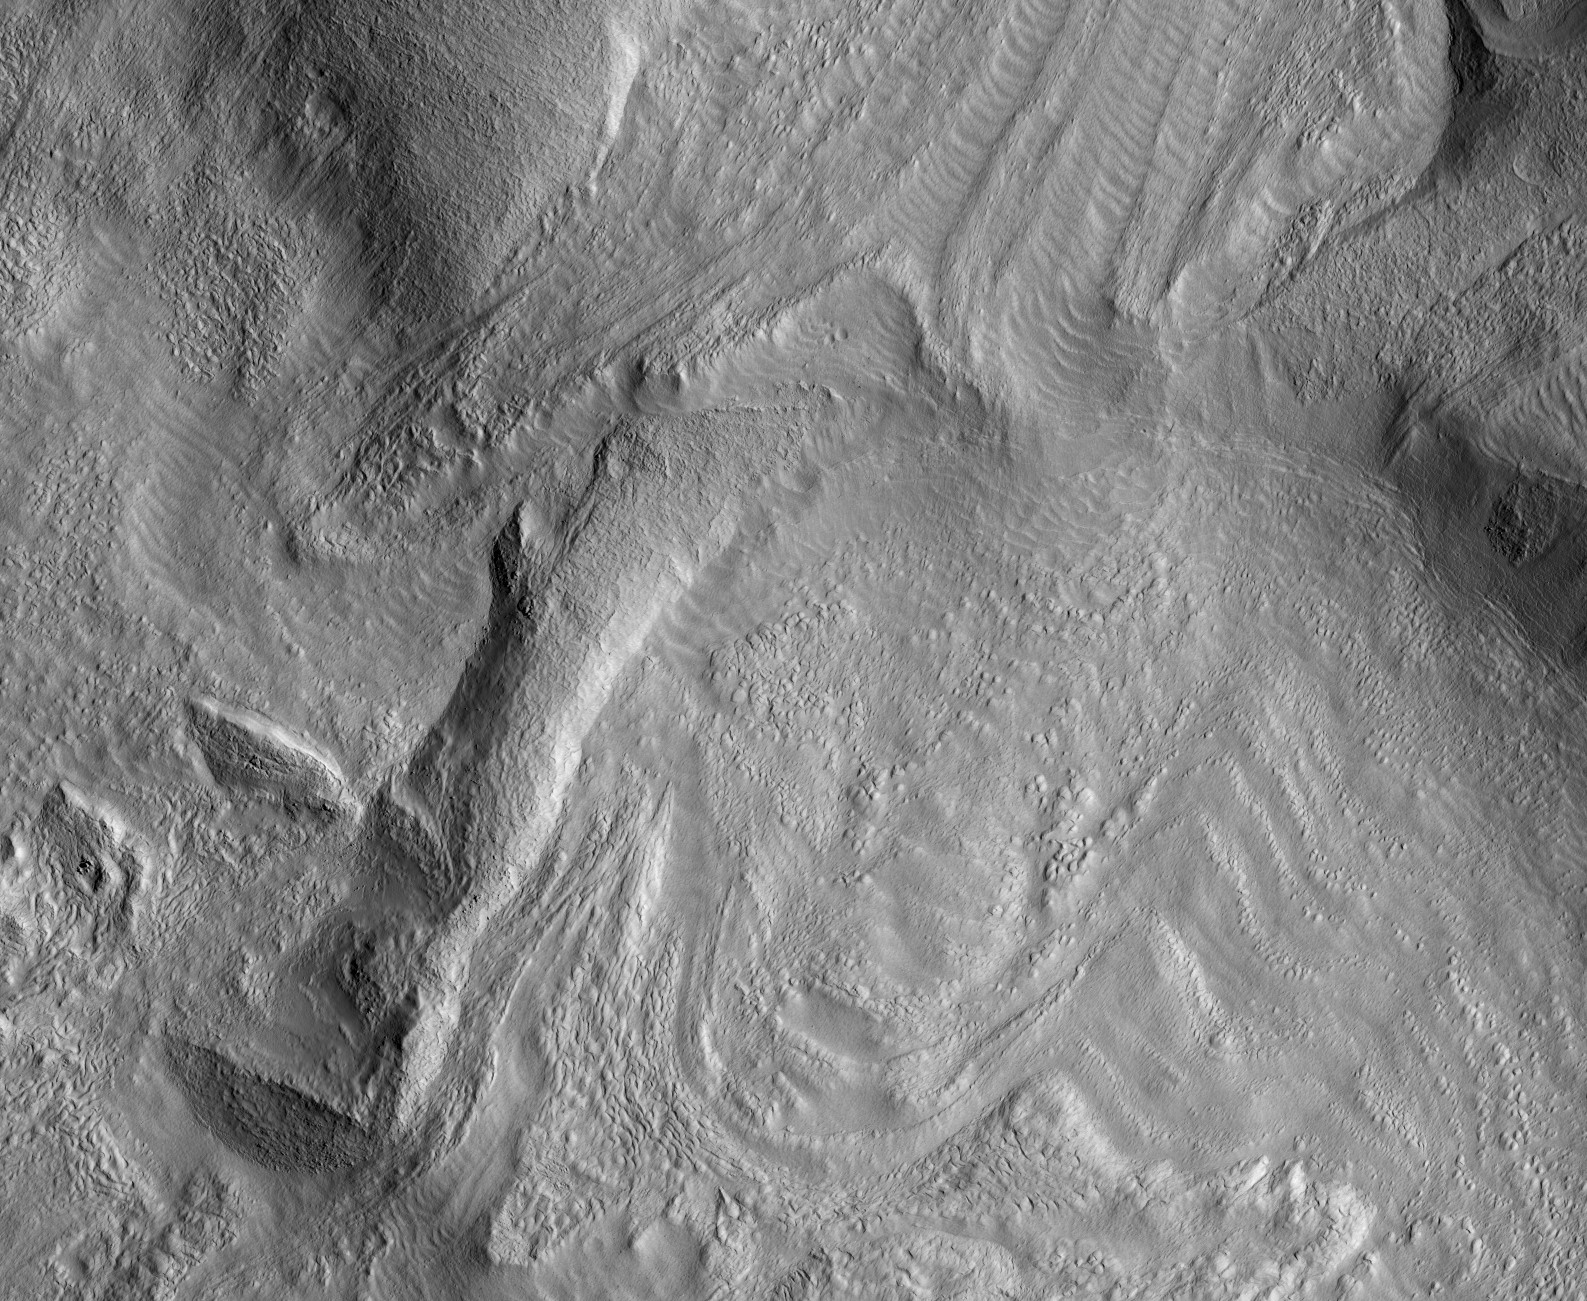 HiRISE image of glacial flow features on Mars!